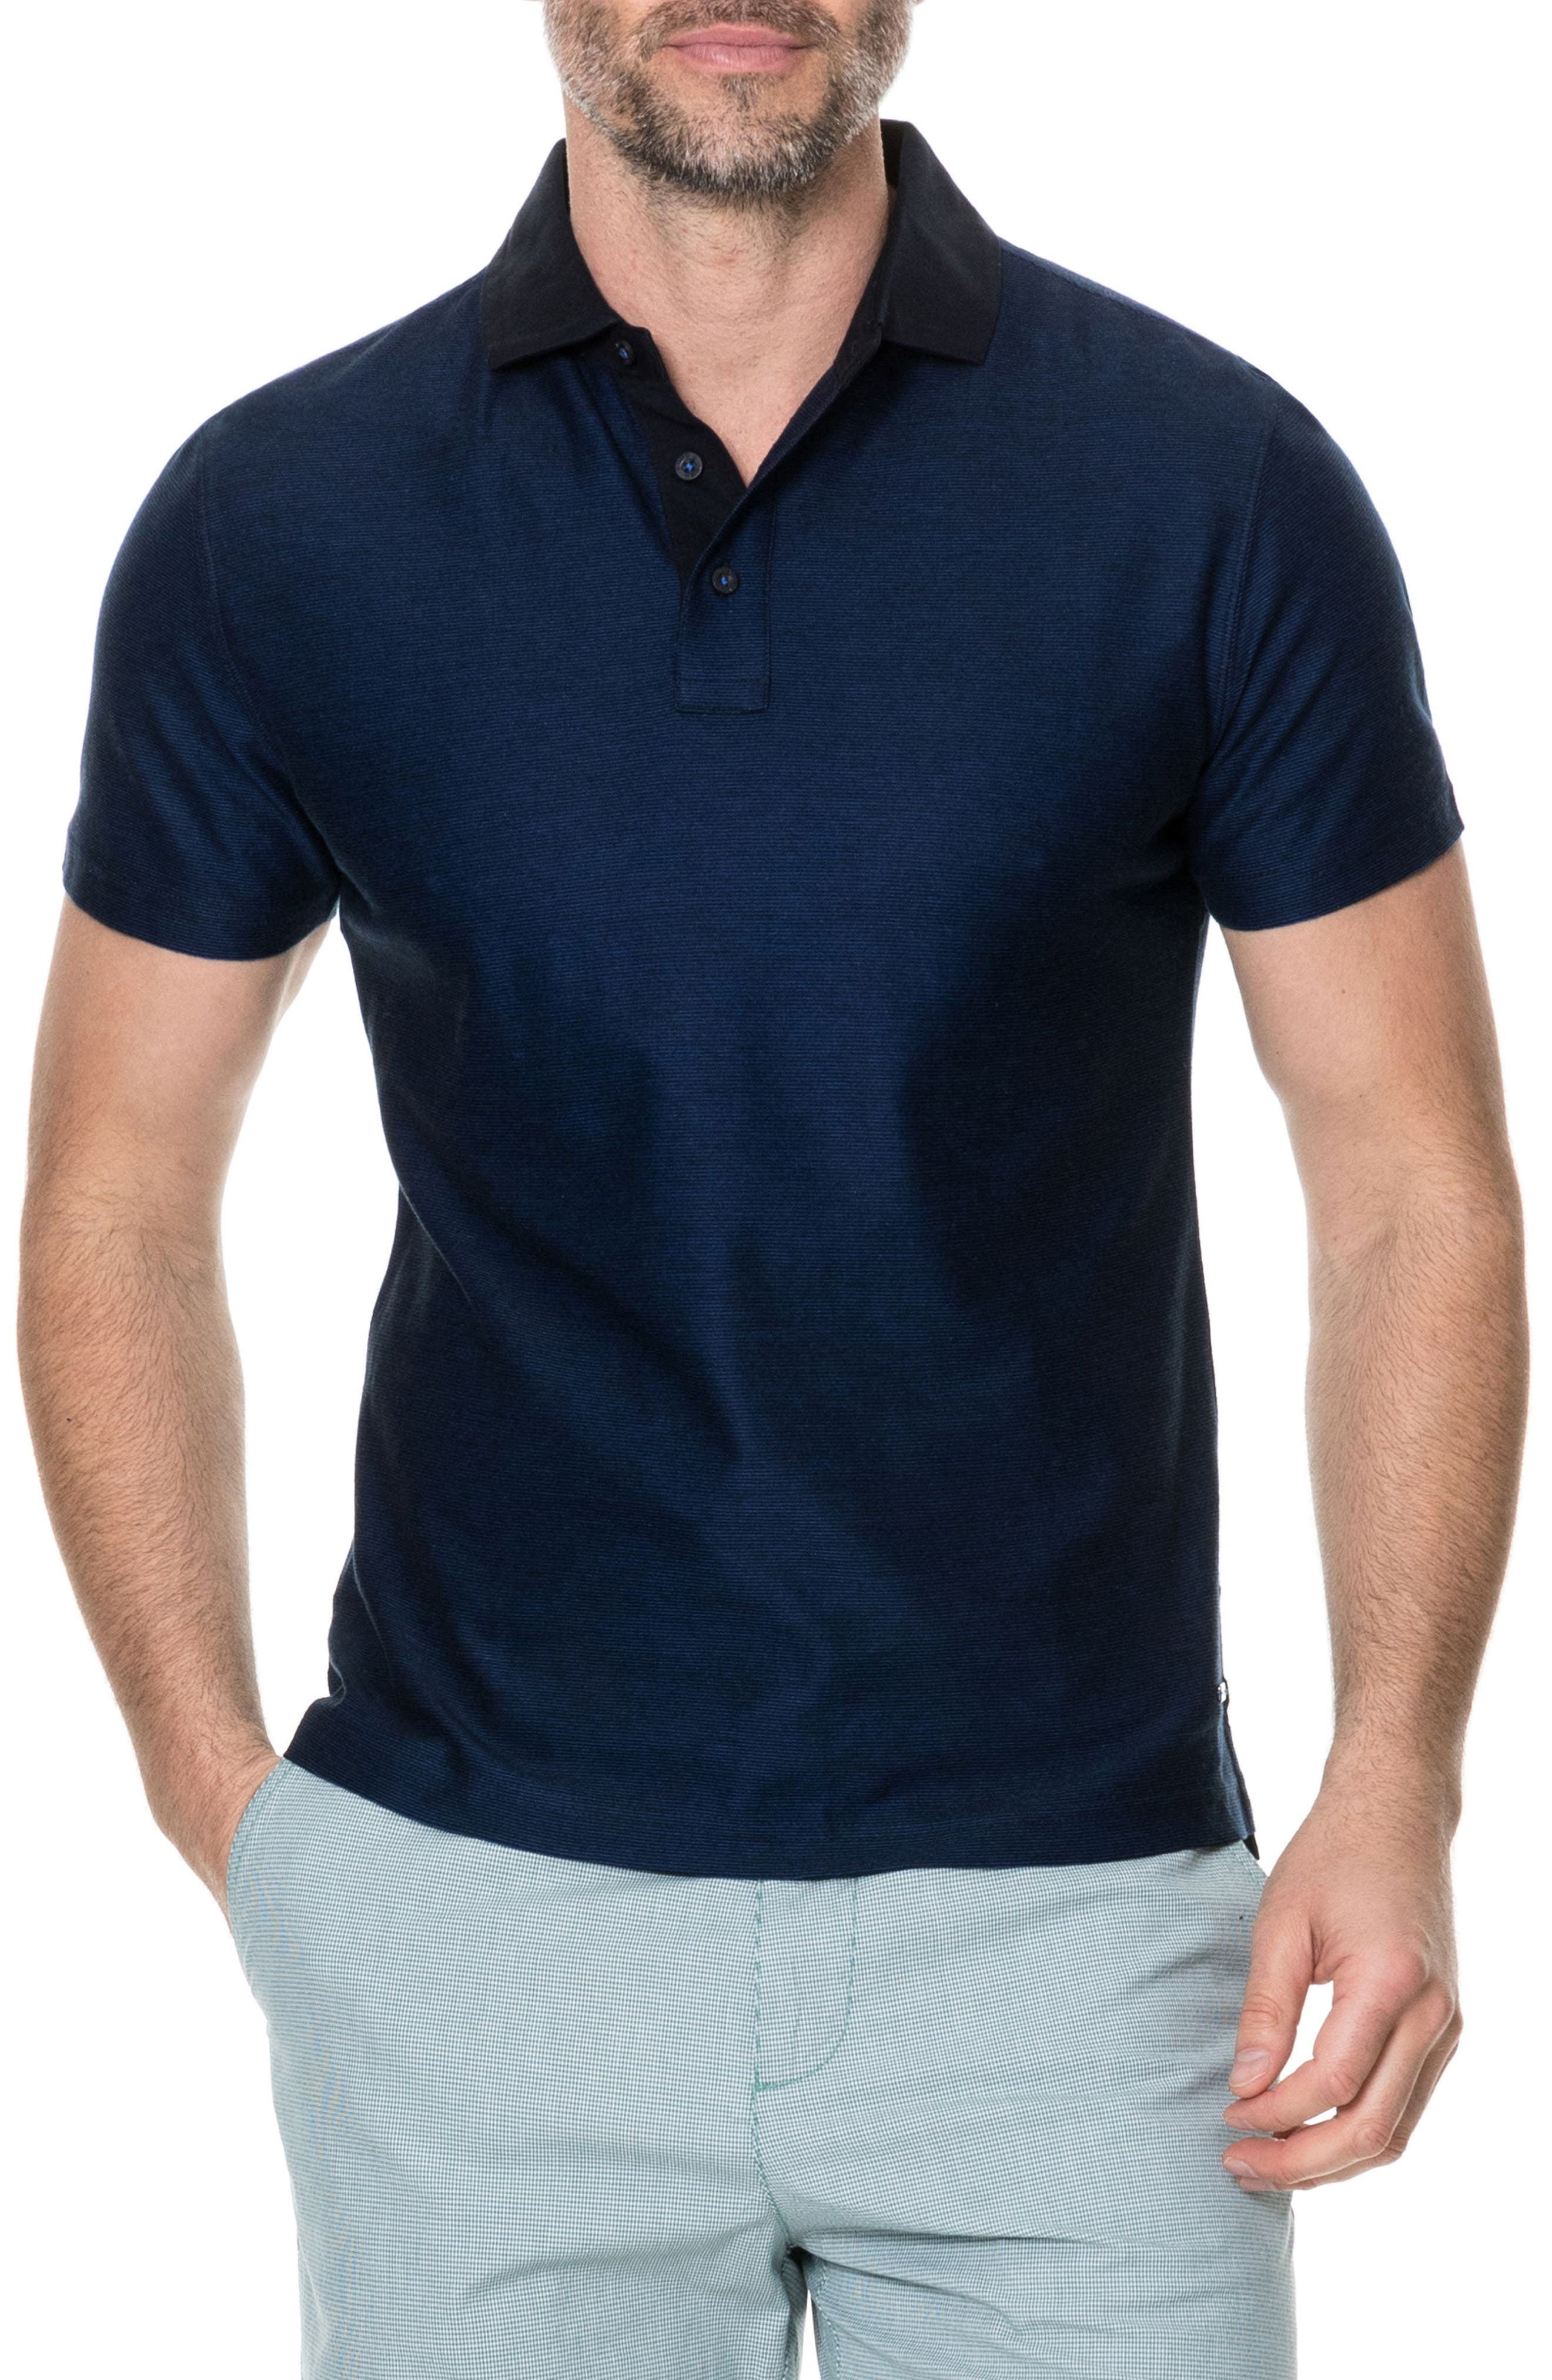 Caplestone Regular Fit Polo,                         Main,                         color, Ink